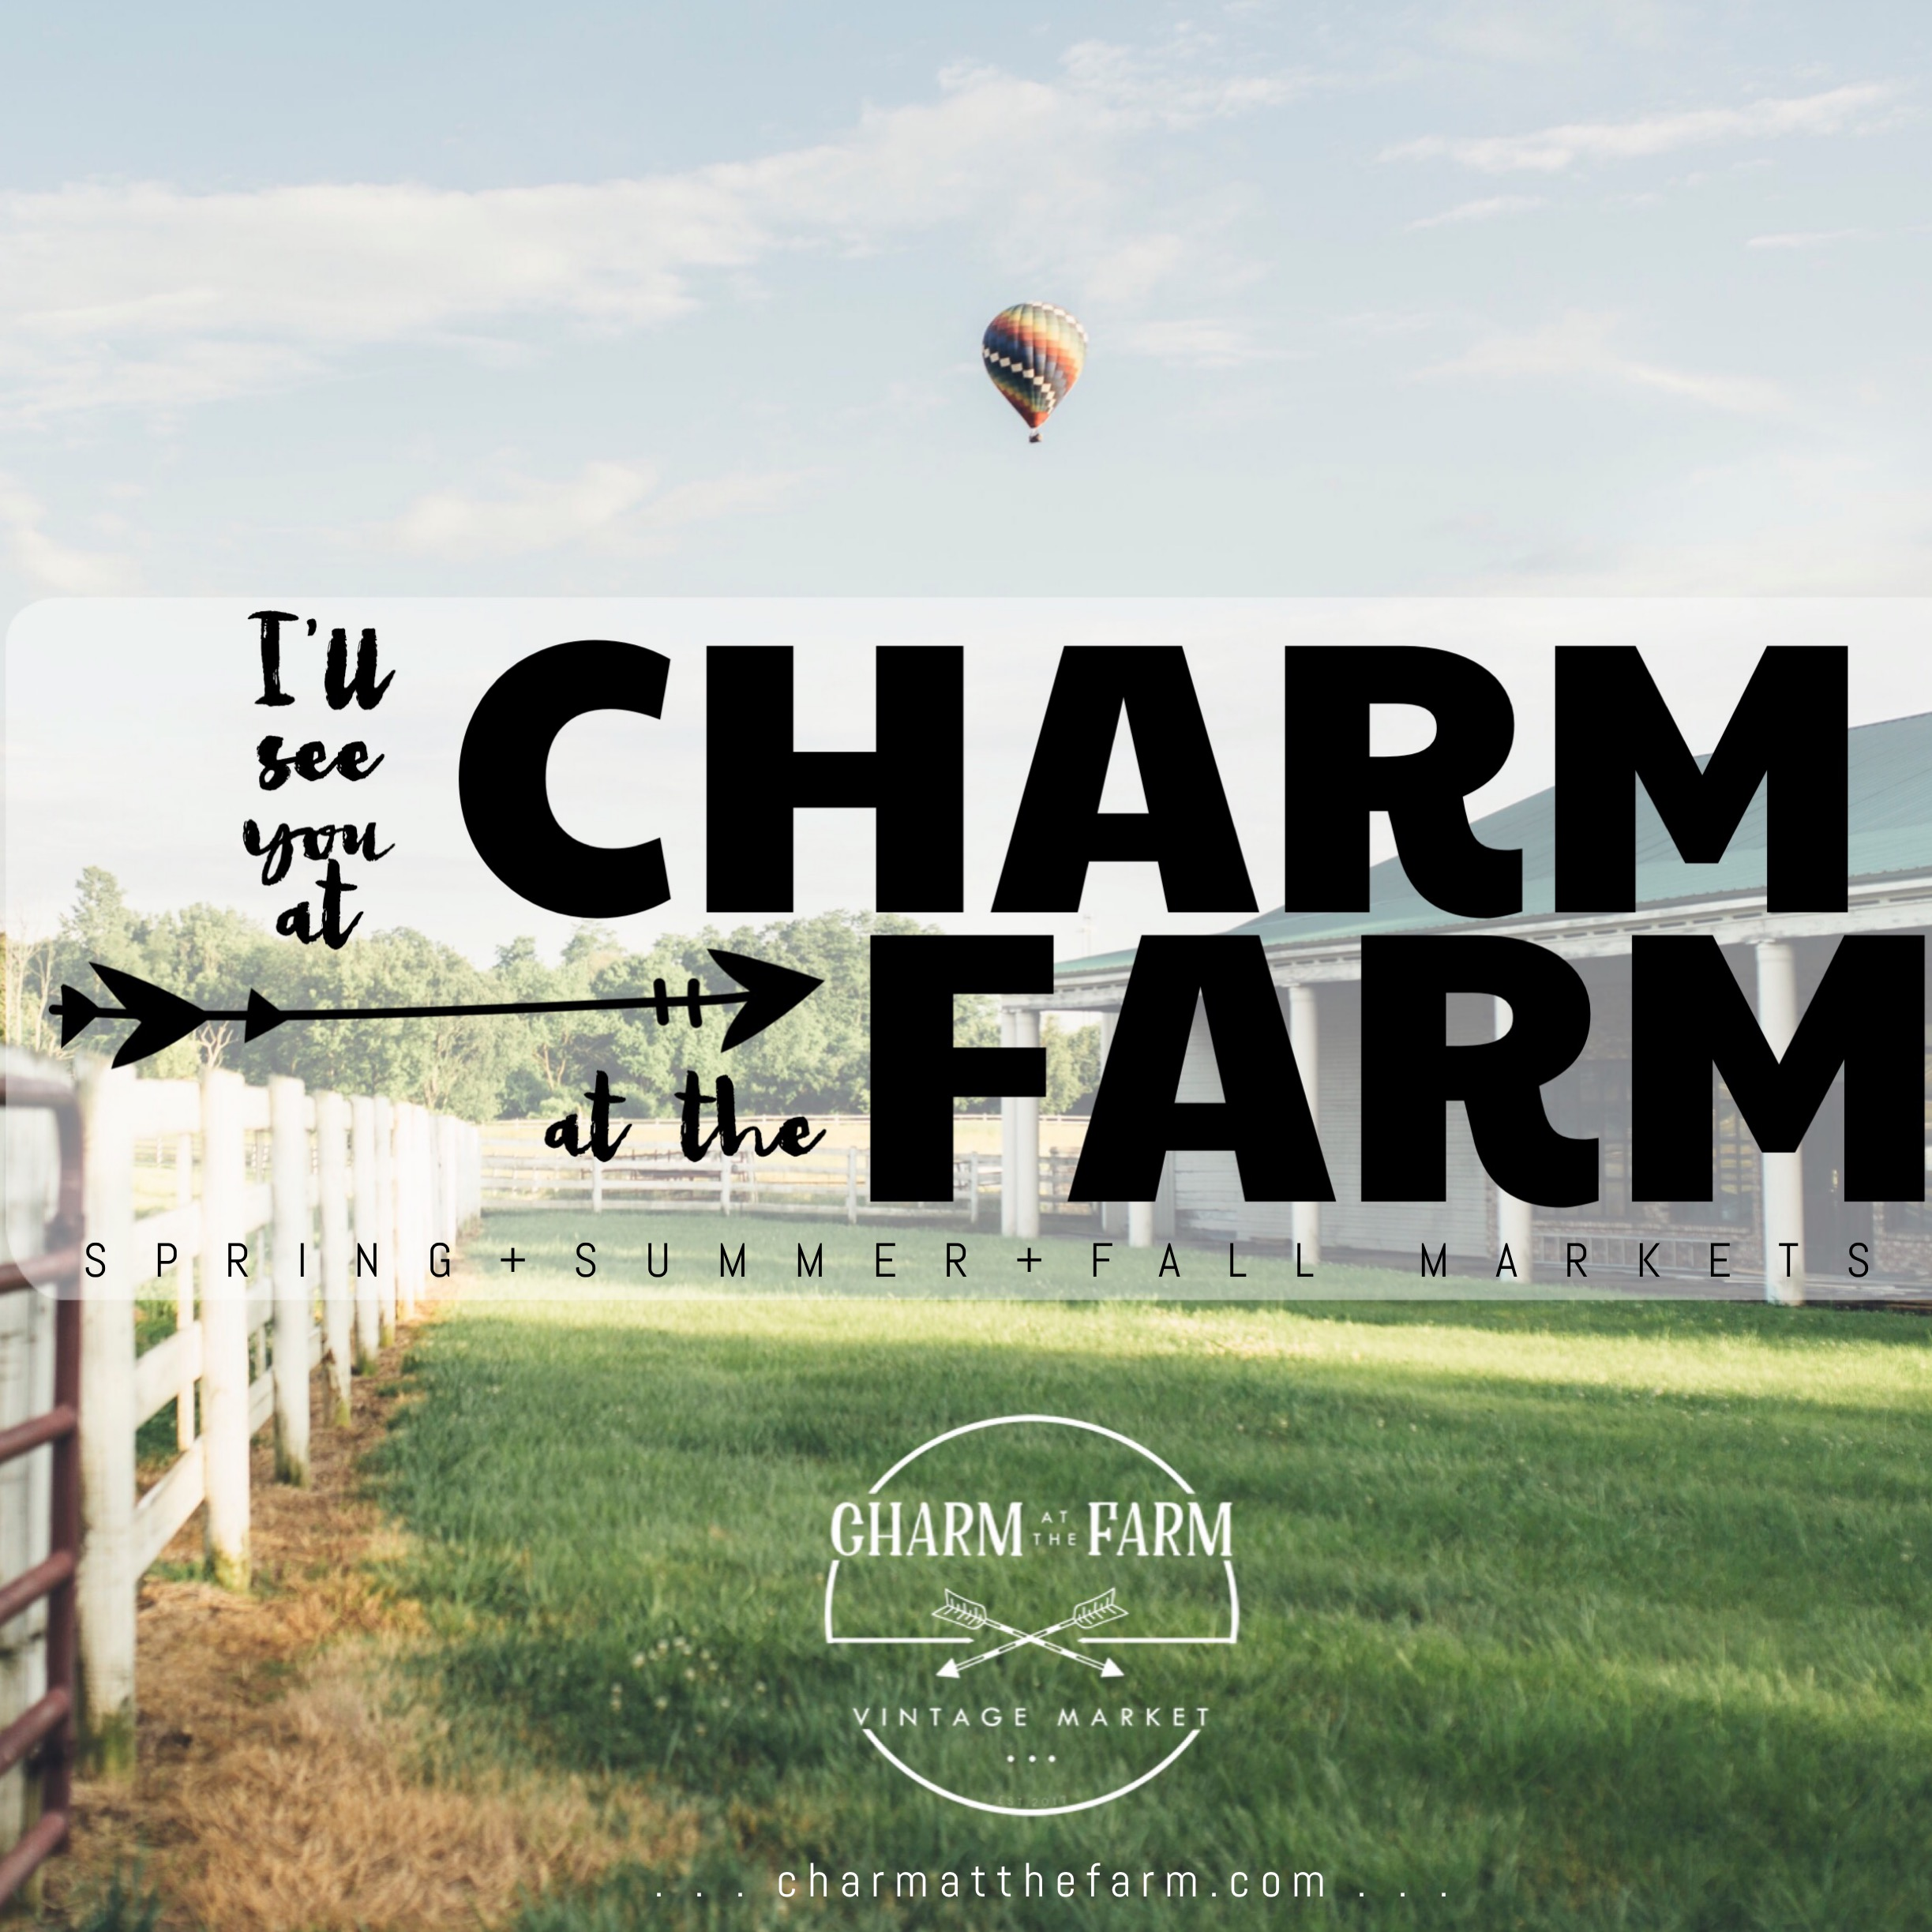 Charm at the Farm 2017